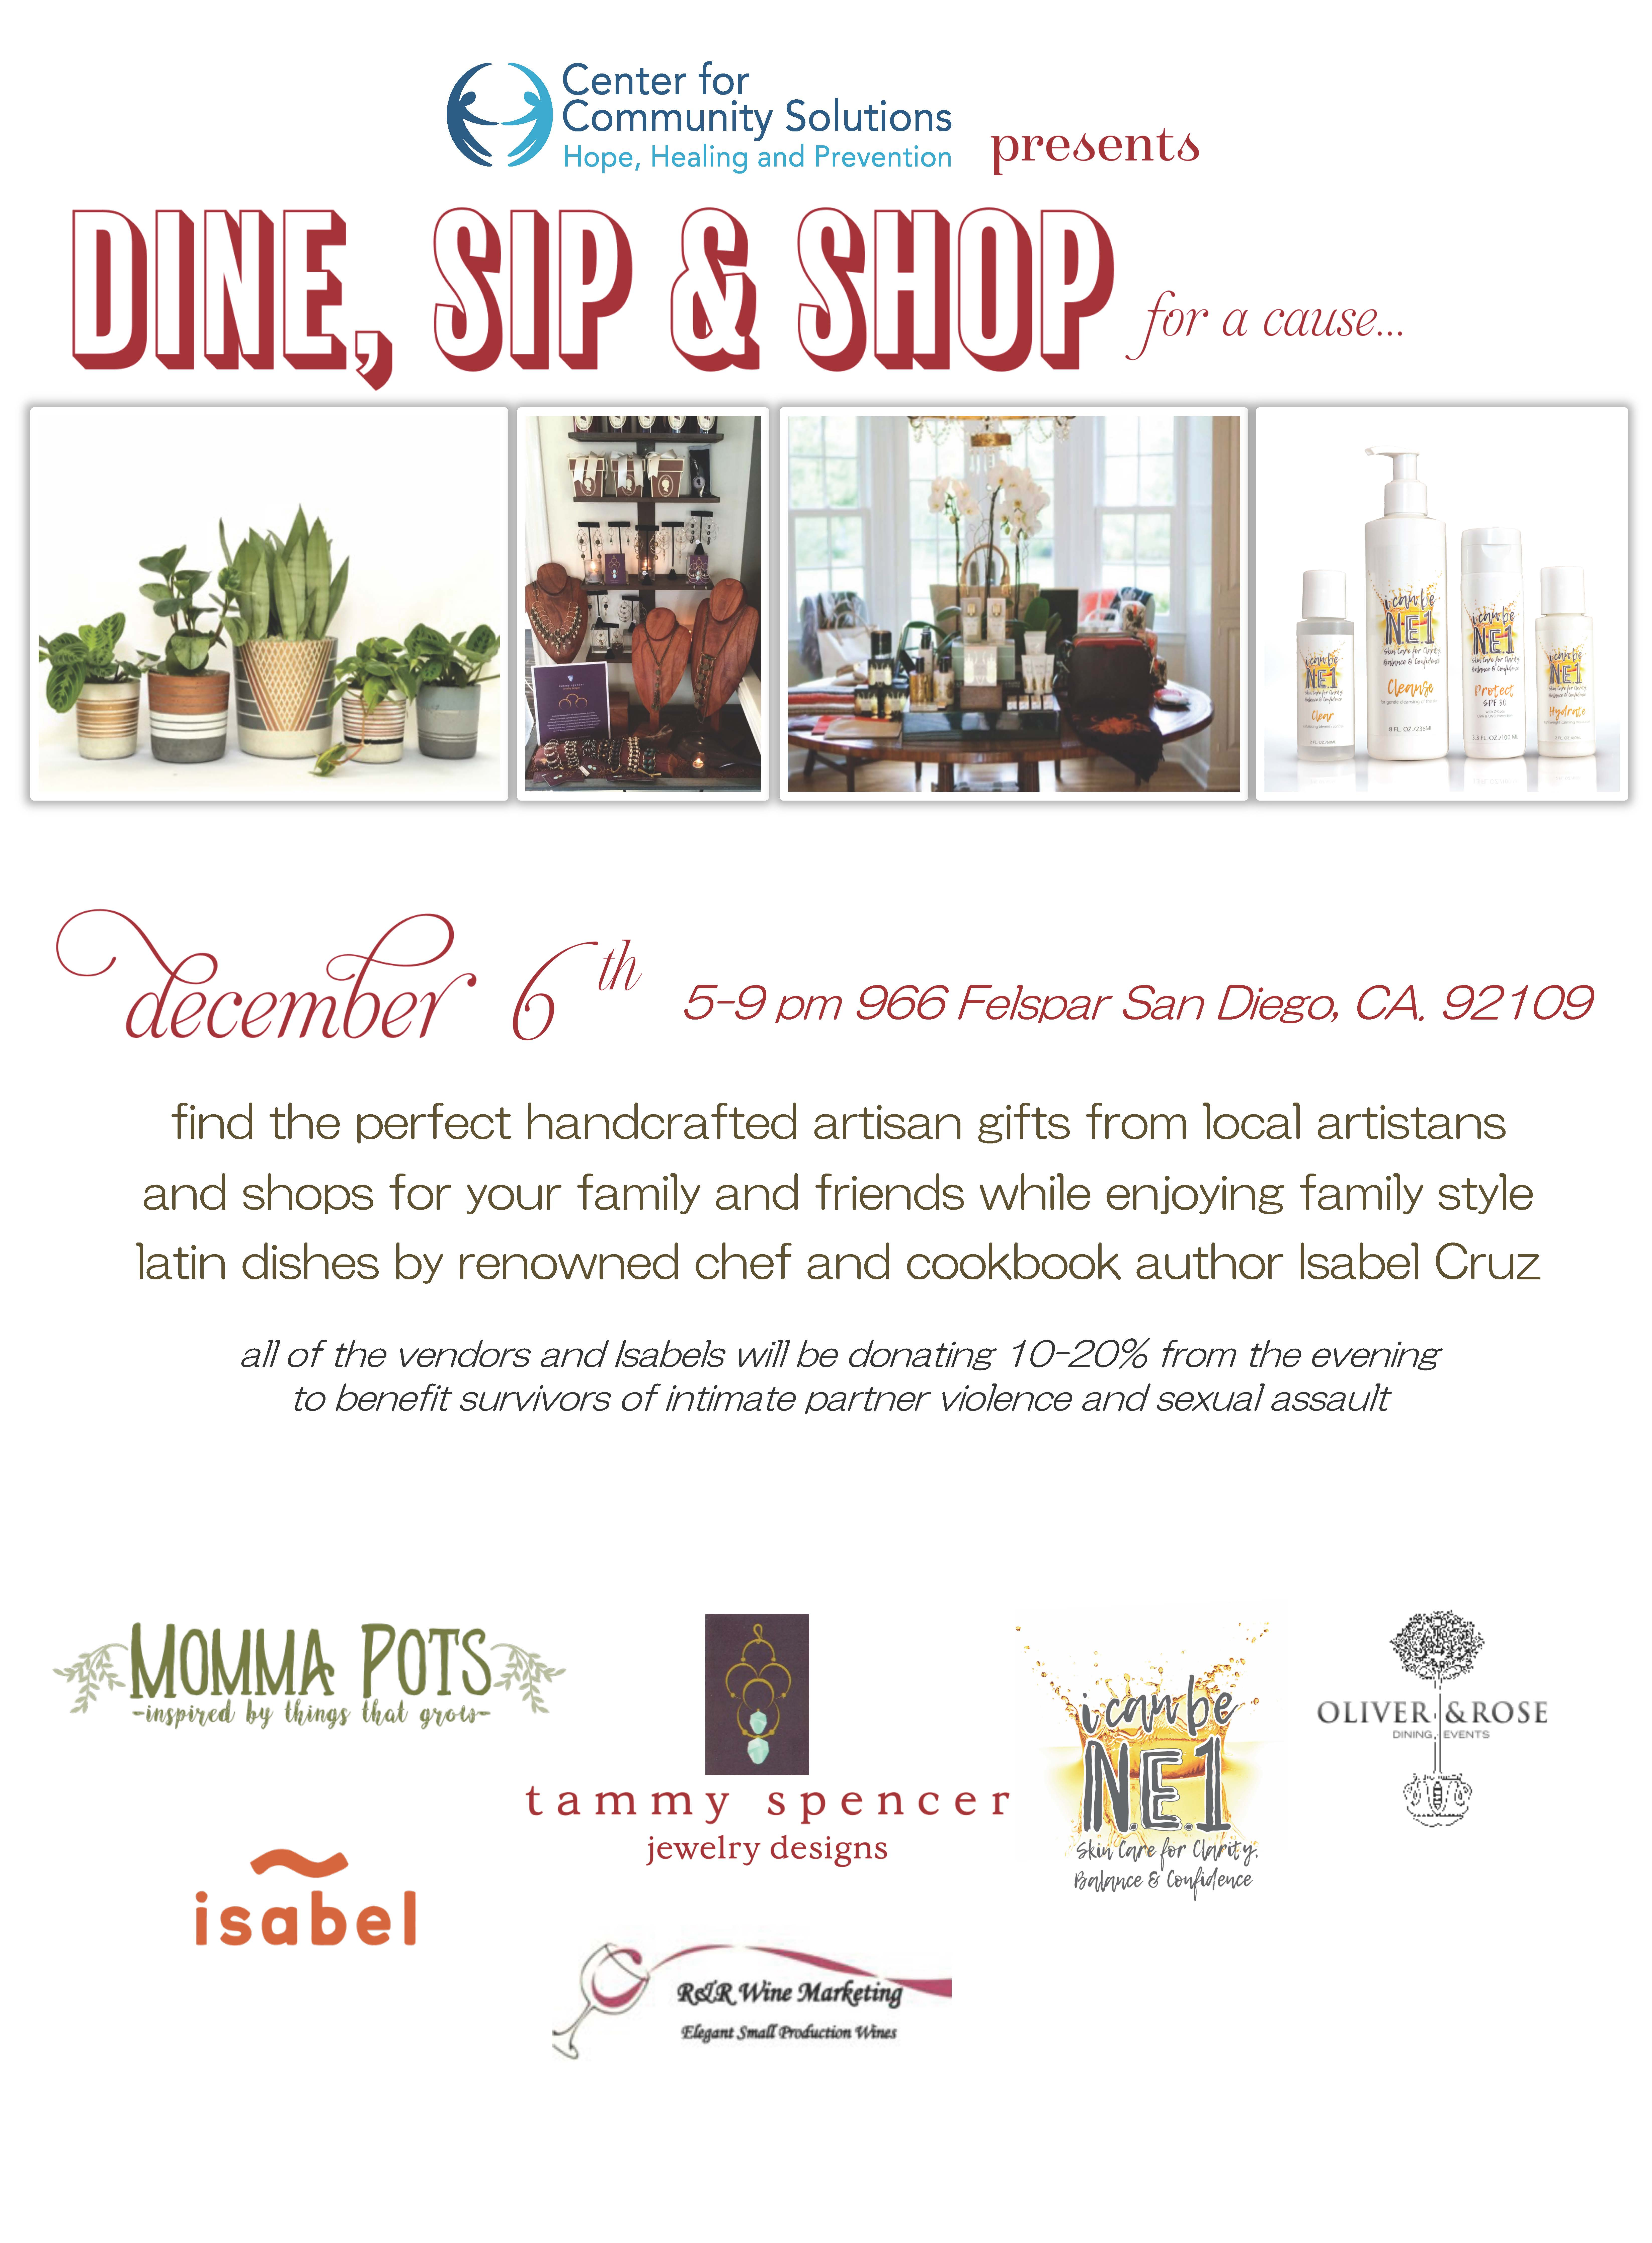 Dine, Sip & Shop for a Cause